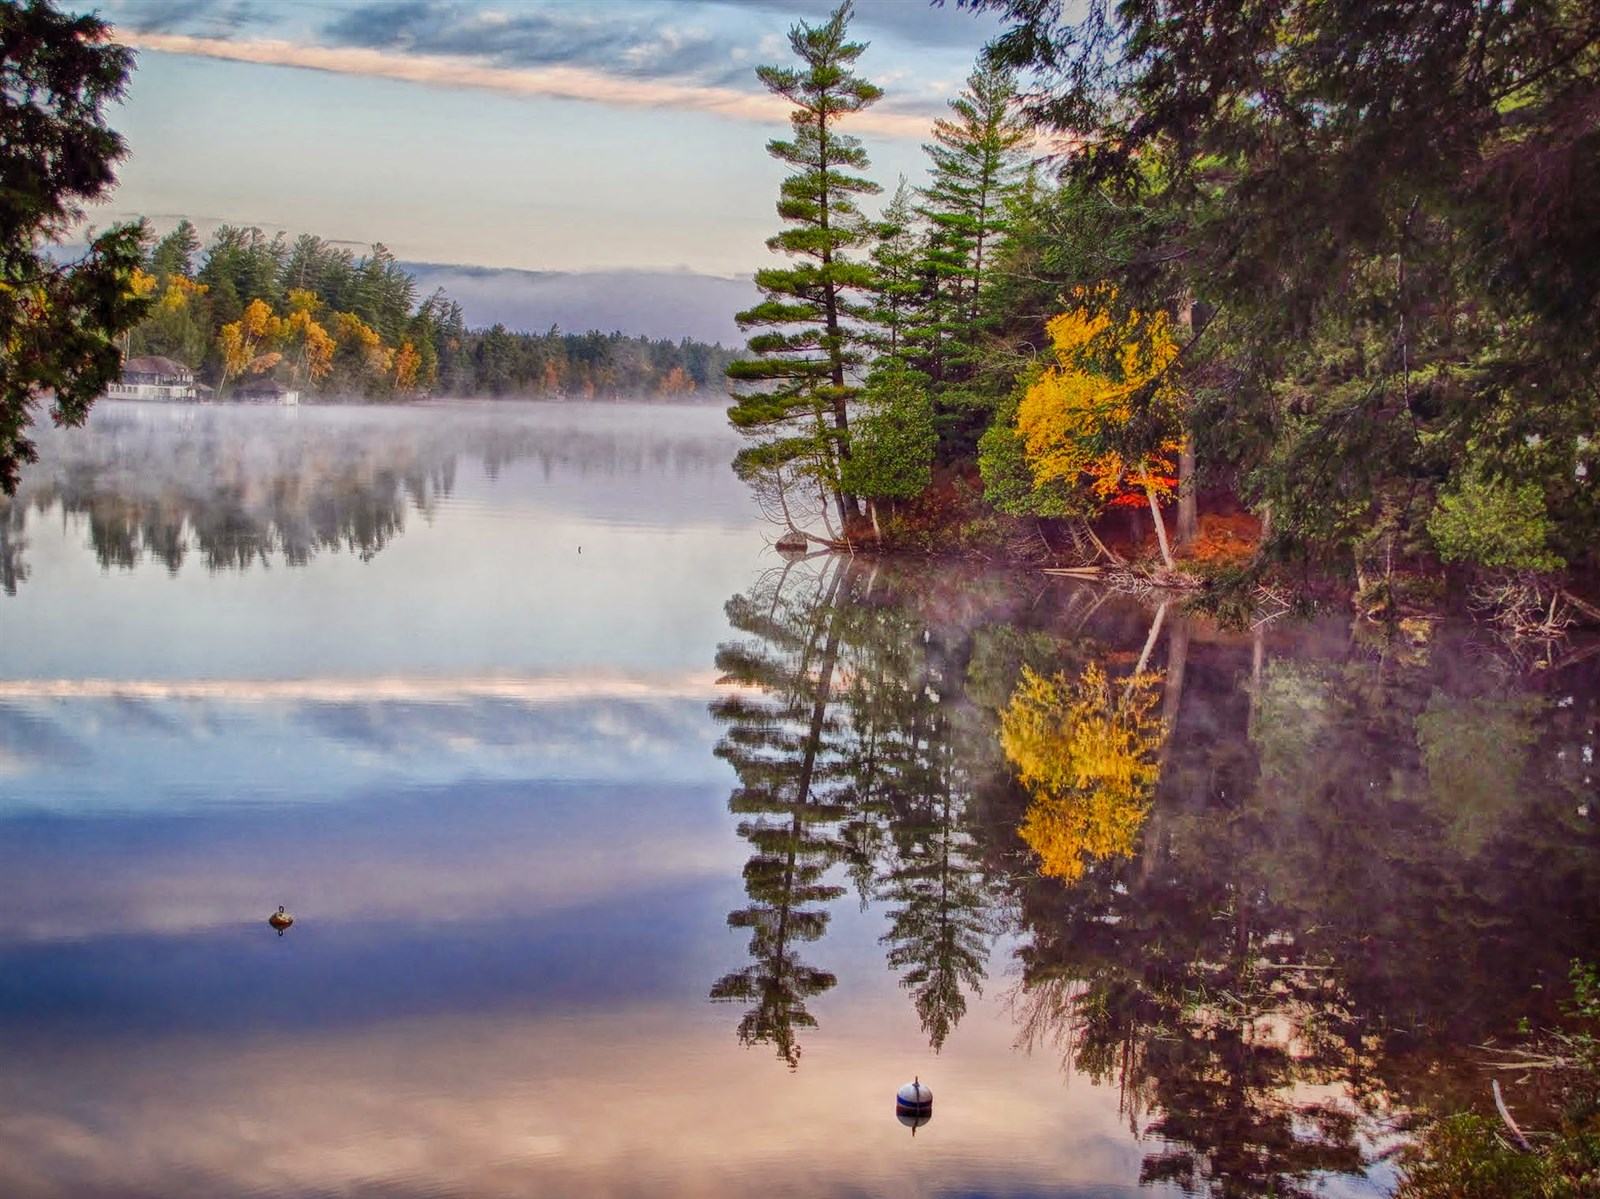 An Intense Fall Reflection by Barbara Franklin